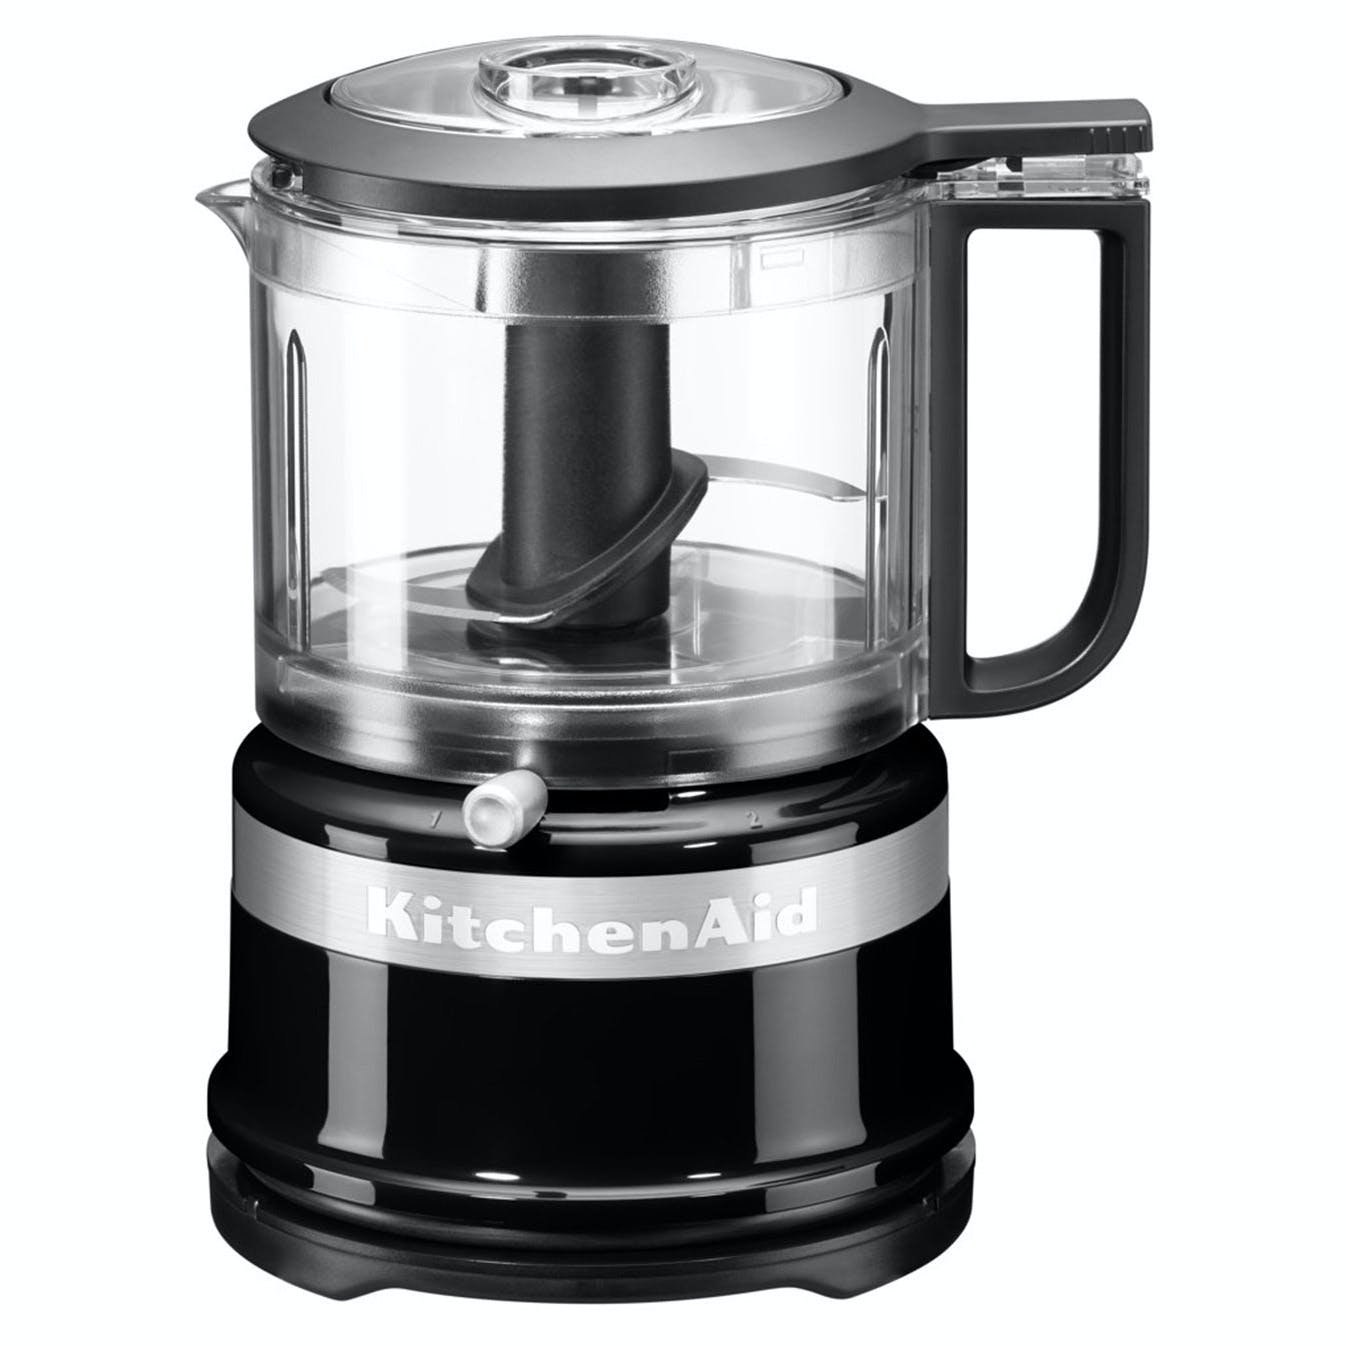 KitchenAid 5KFC3516BOB